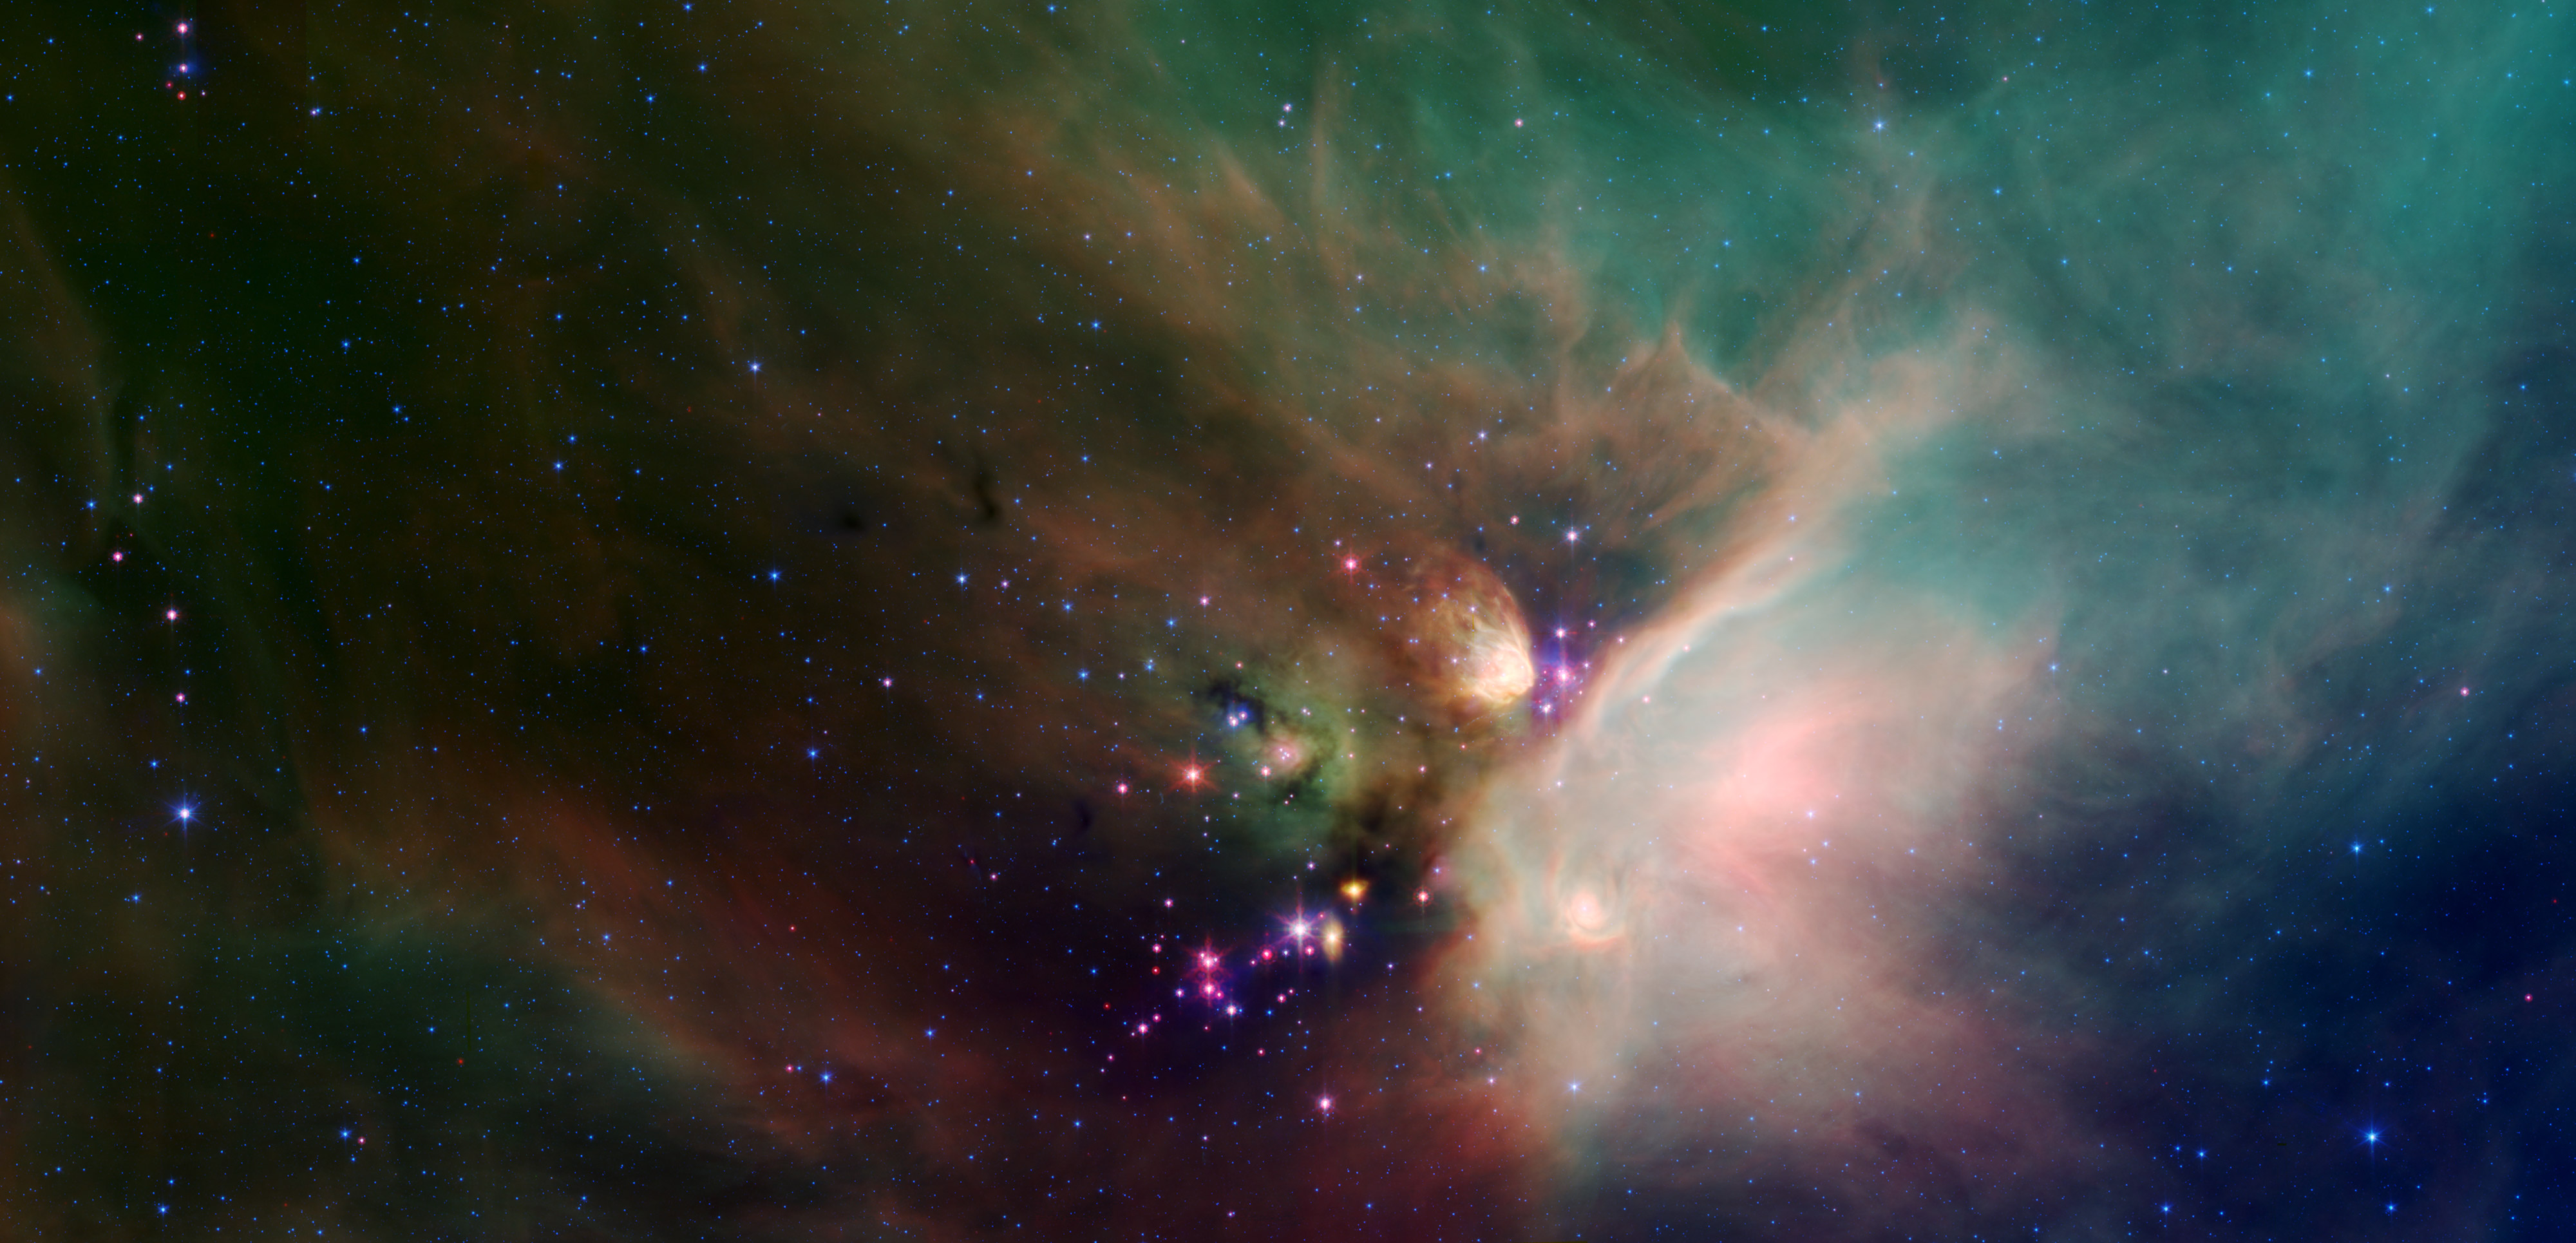 Young Stars Cradled in Dust: Newborn stars peek out from beneath their natal blanket of dust in this dynamic image of the Rho Ophiuchi dark cloud from Spitzer. Credit: NASA/JPL-Caltech/Harvard-Smithsonian CfA